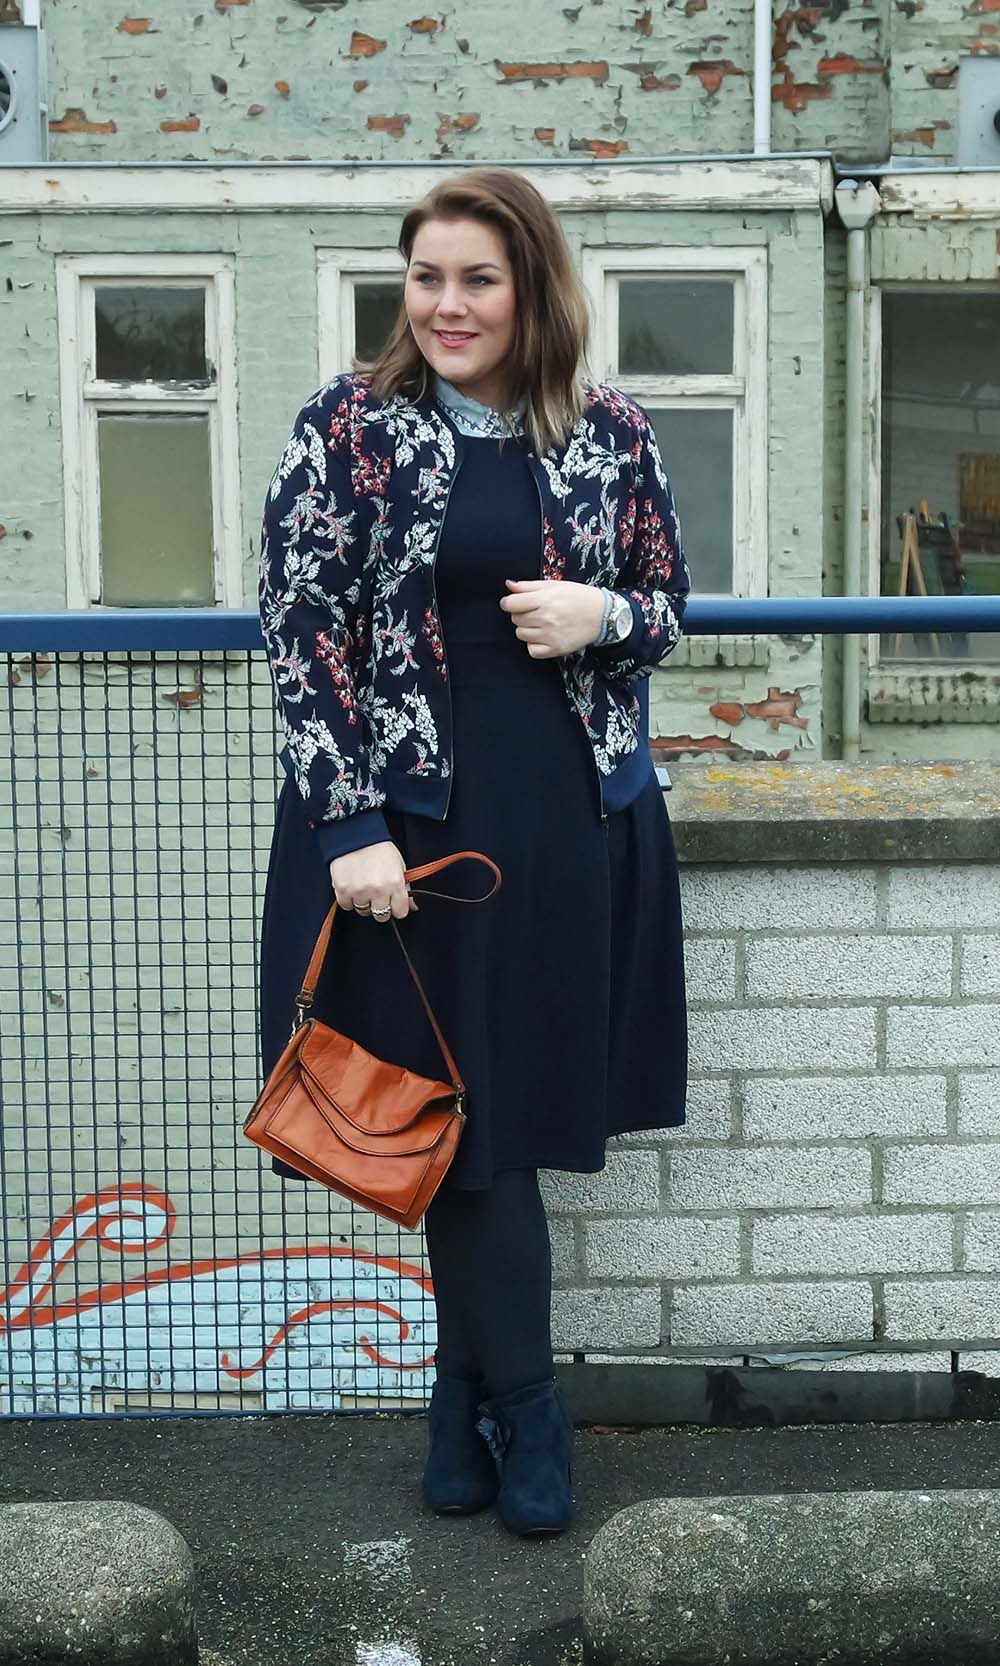 b679ef52713 Longing for spring in this flower bomber  2017  curvy  fashion blog   minimal print  navy  Paprika  spring  Yours Clothing